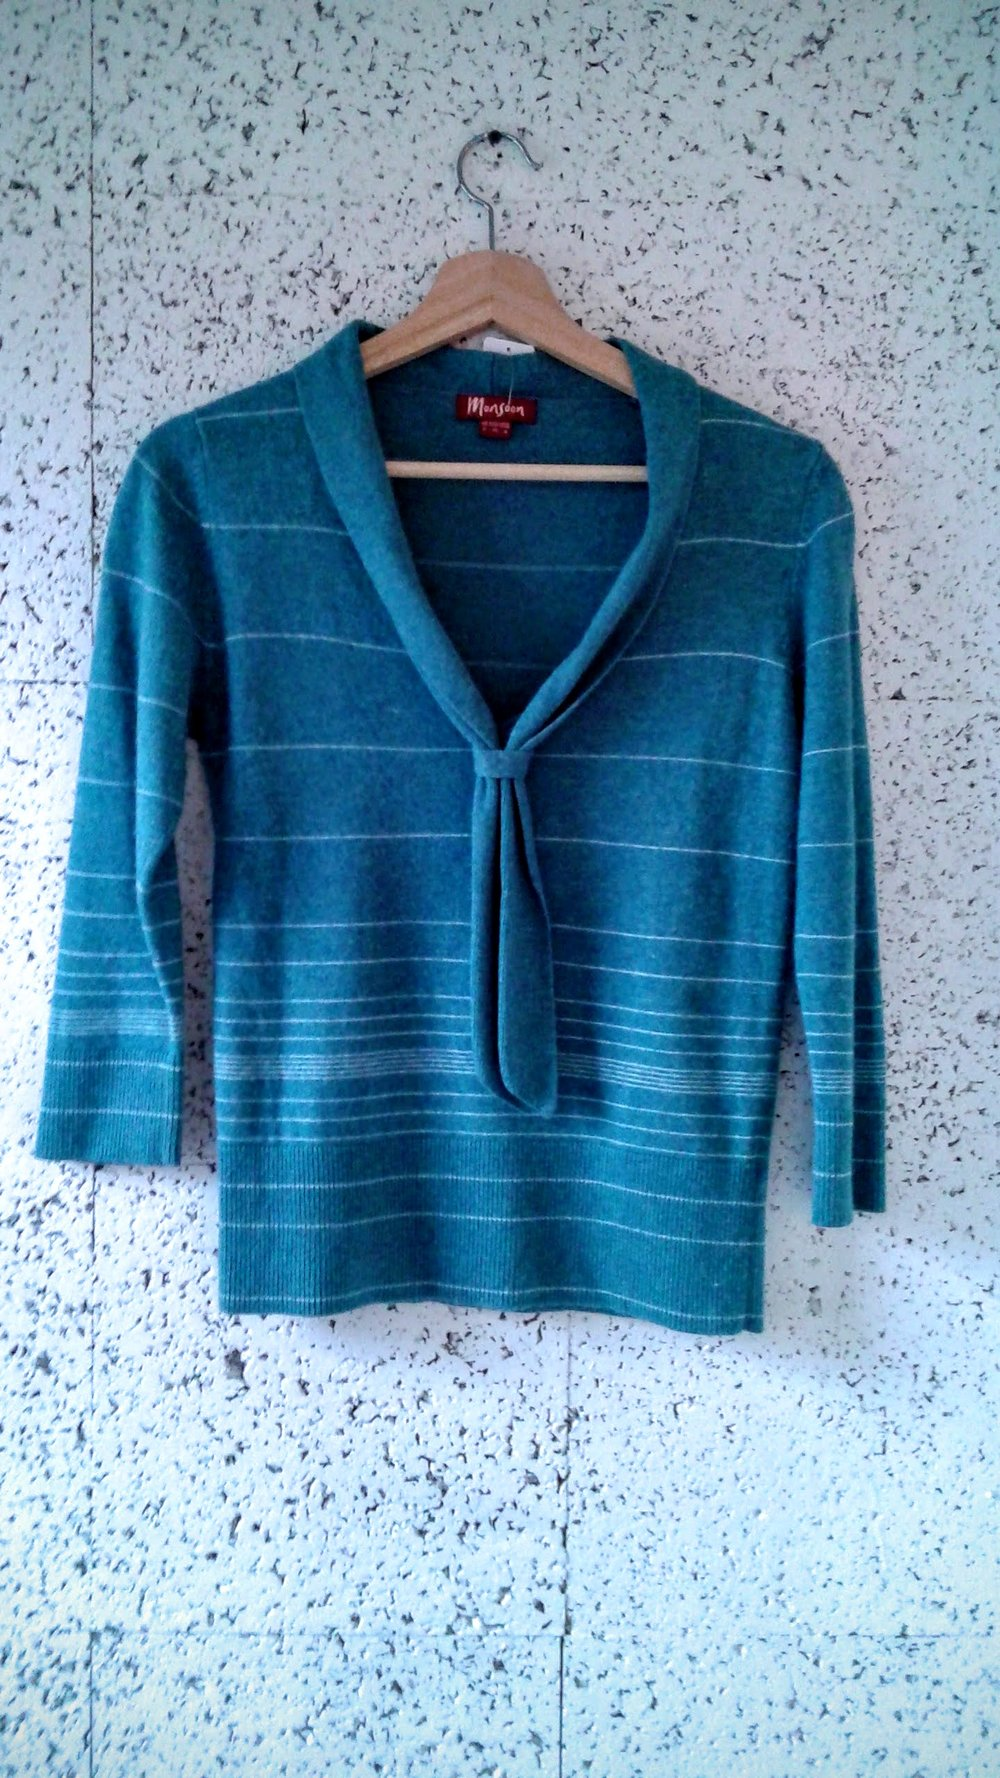 Monsoon  sweater; Size S, $26